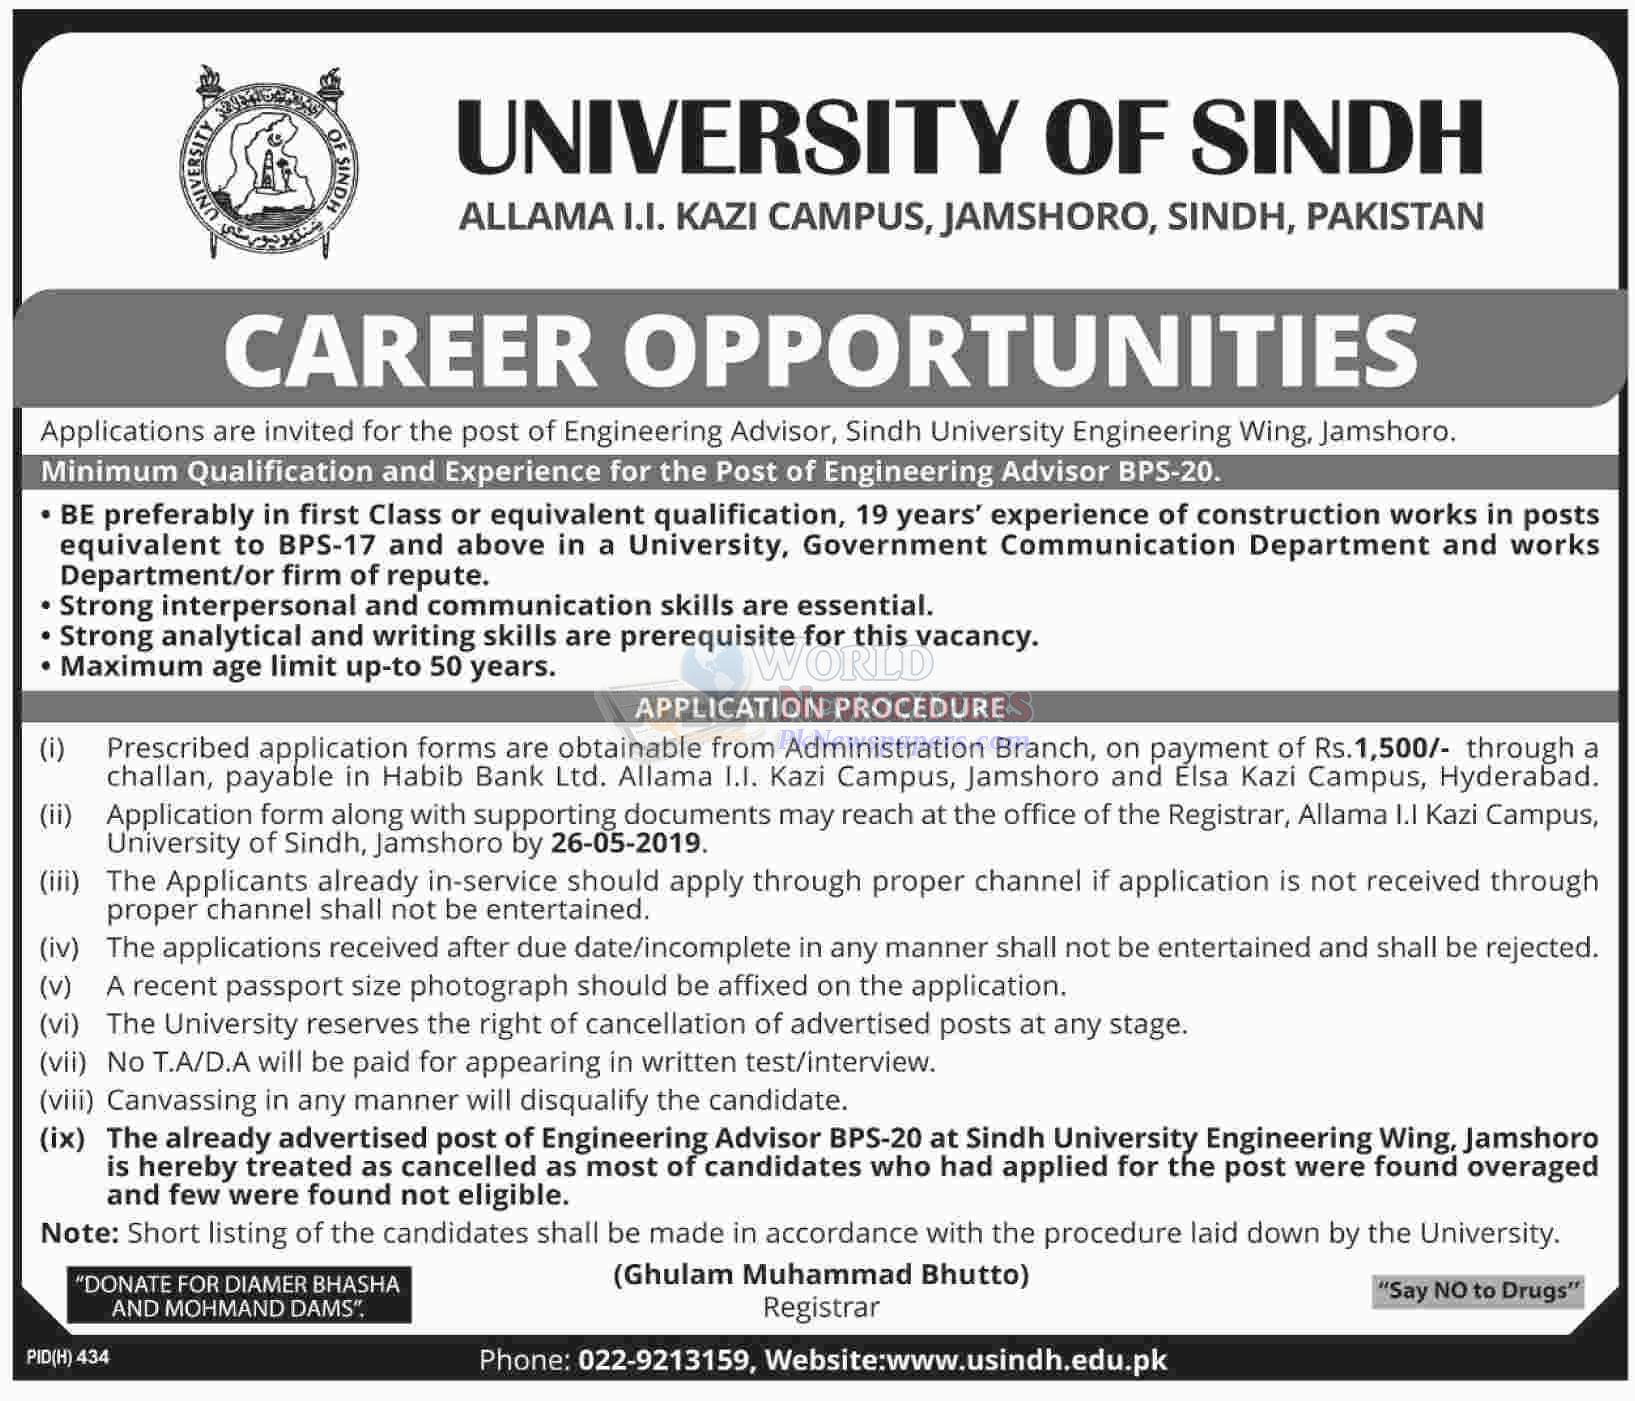 Jobs in University of Sindh Jamshoro